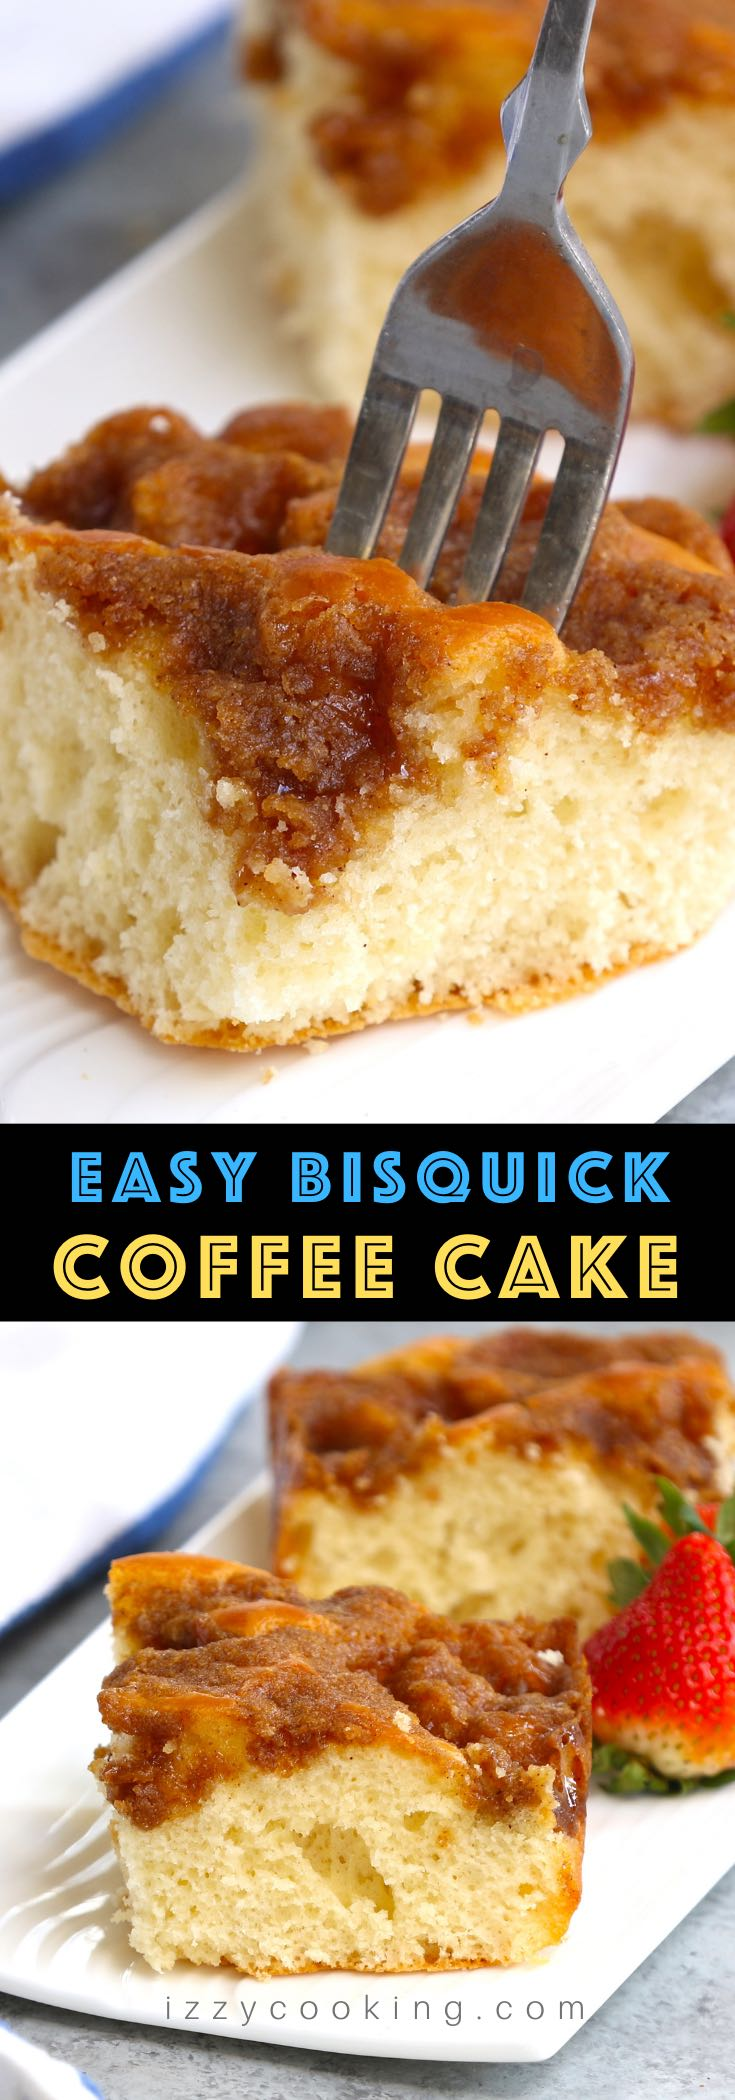 This easy Bisquick Coffee Cake is perfectly moist, buttery, and topped with crunchy cinnamon streusel! Have you ever woken up on a Sunday morning and just craved that perfect dessert or treat to pair with your morning coffee? This recipe uses Bisquick mix for a quick and easy coffee cake – perfect for breakfast or brunch!